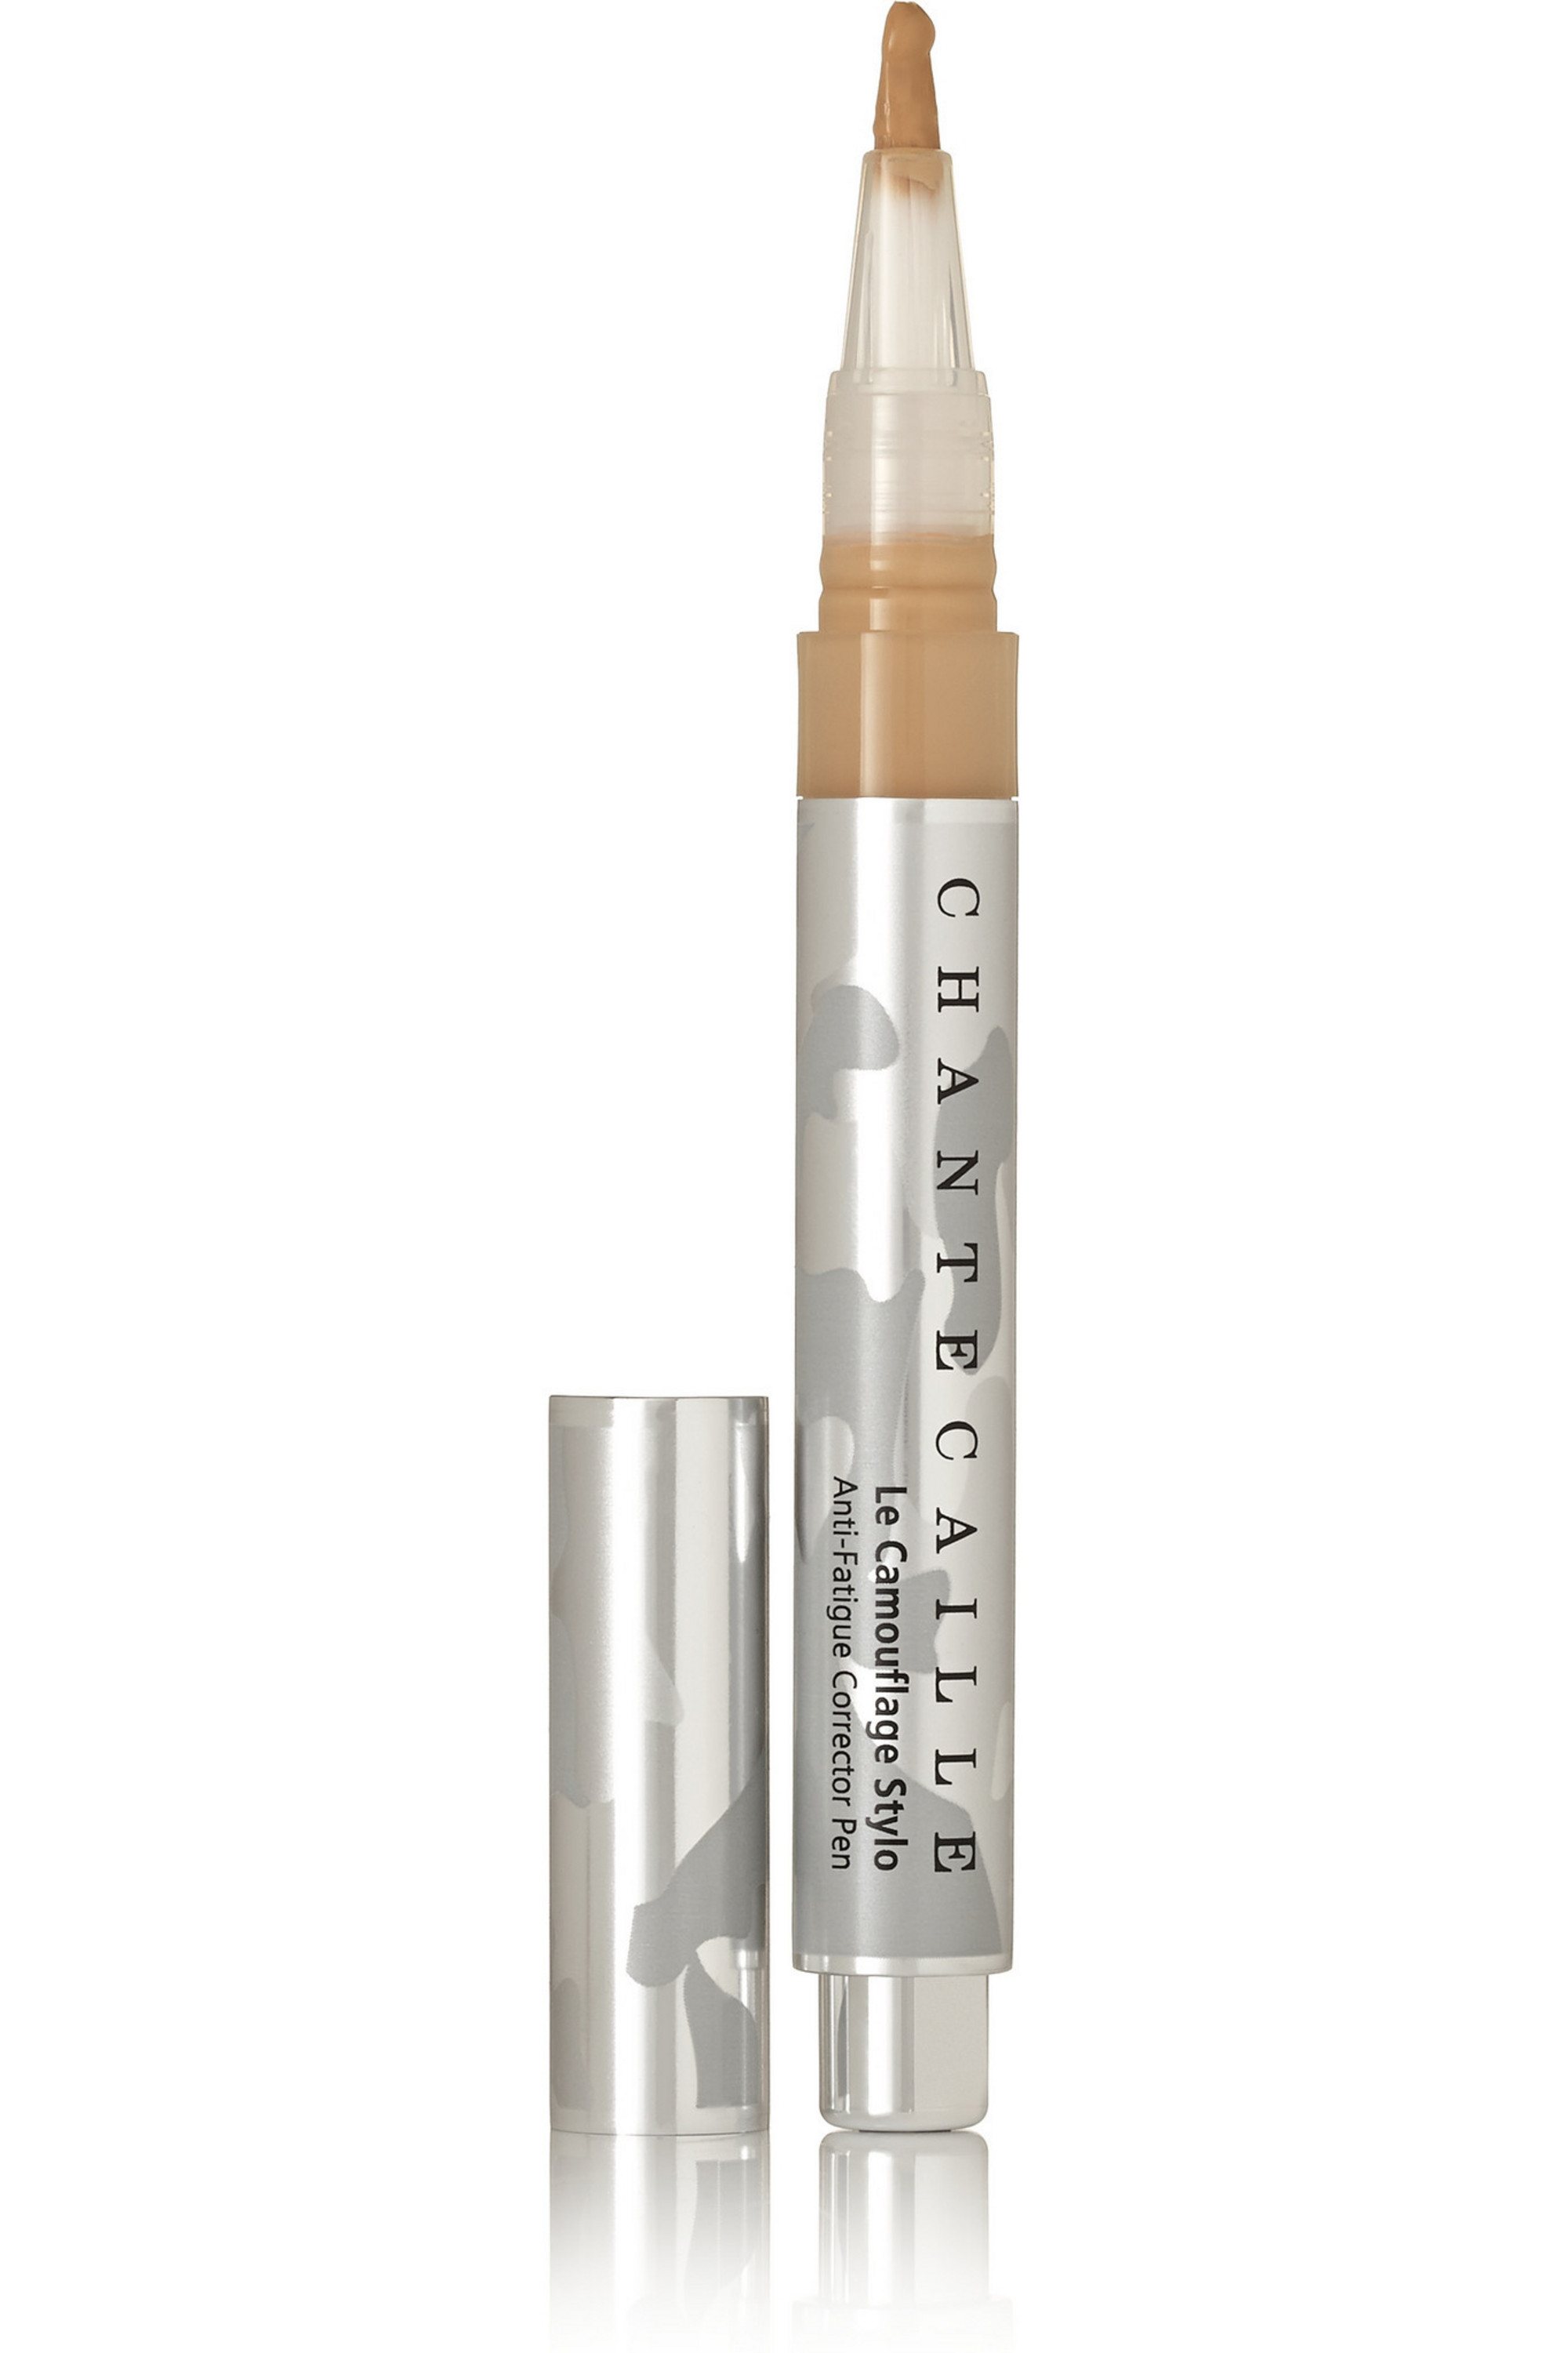 Chantecaille Le Camouflage Stylo - 5, 1.8 ml